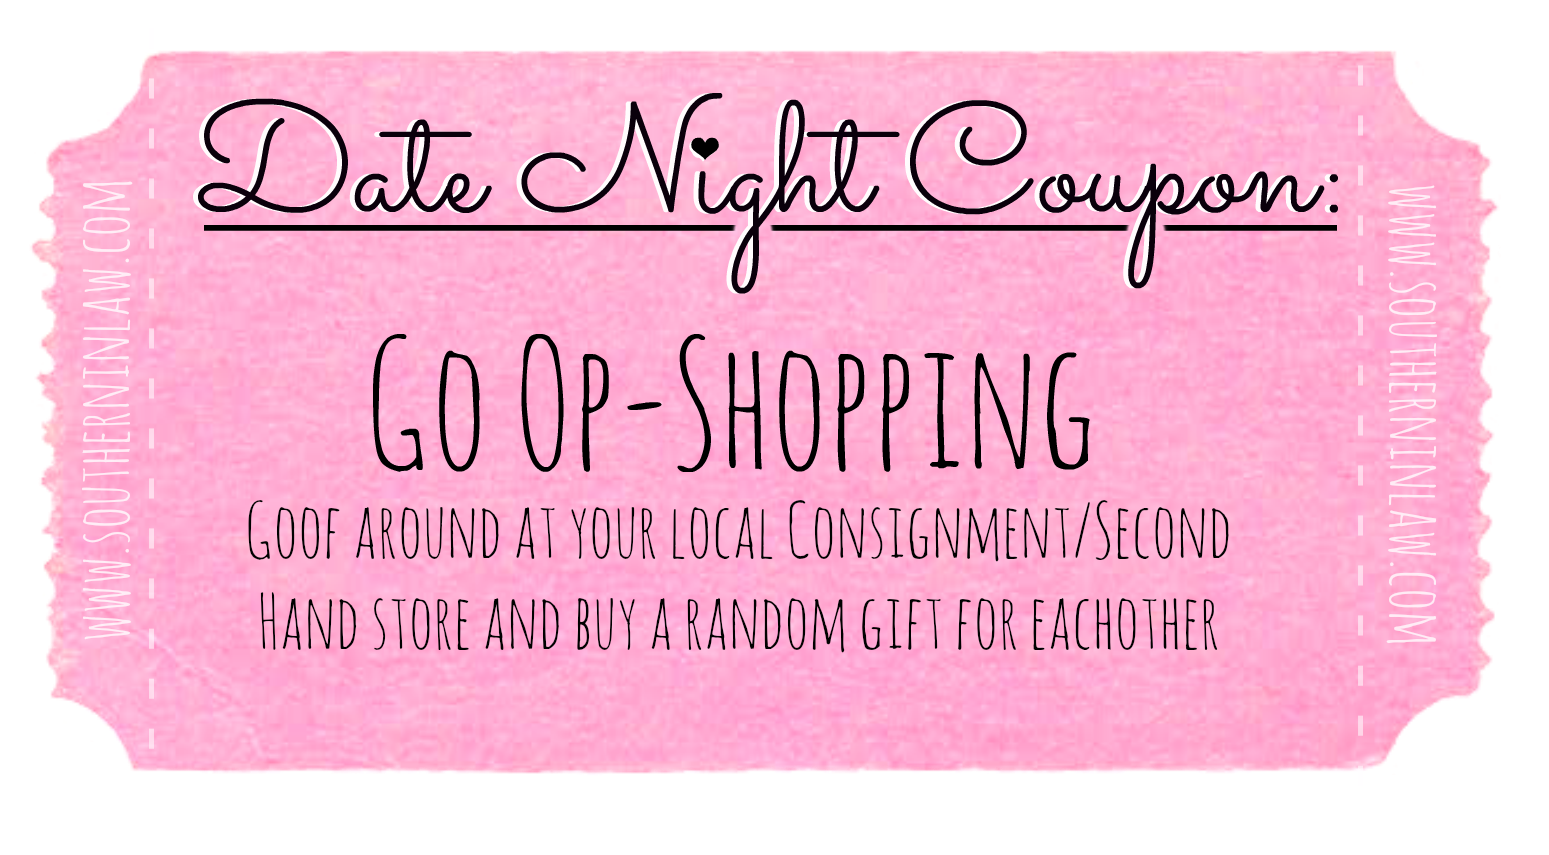 Affordable Date Ideas - Cheap Date Ideas Coupons - Go Op-shopping